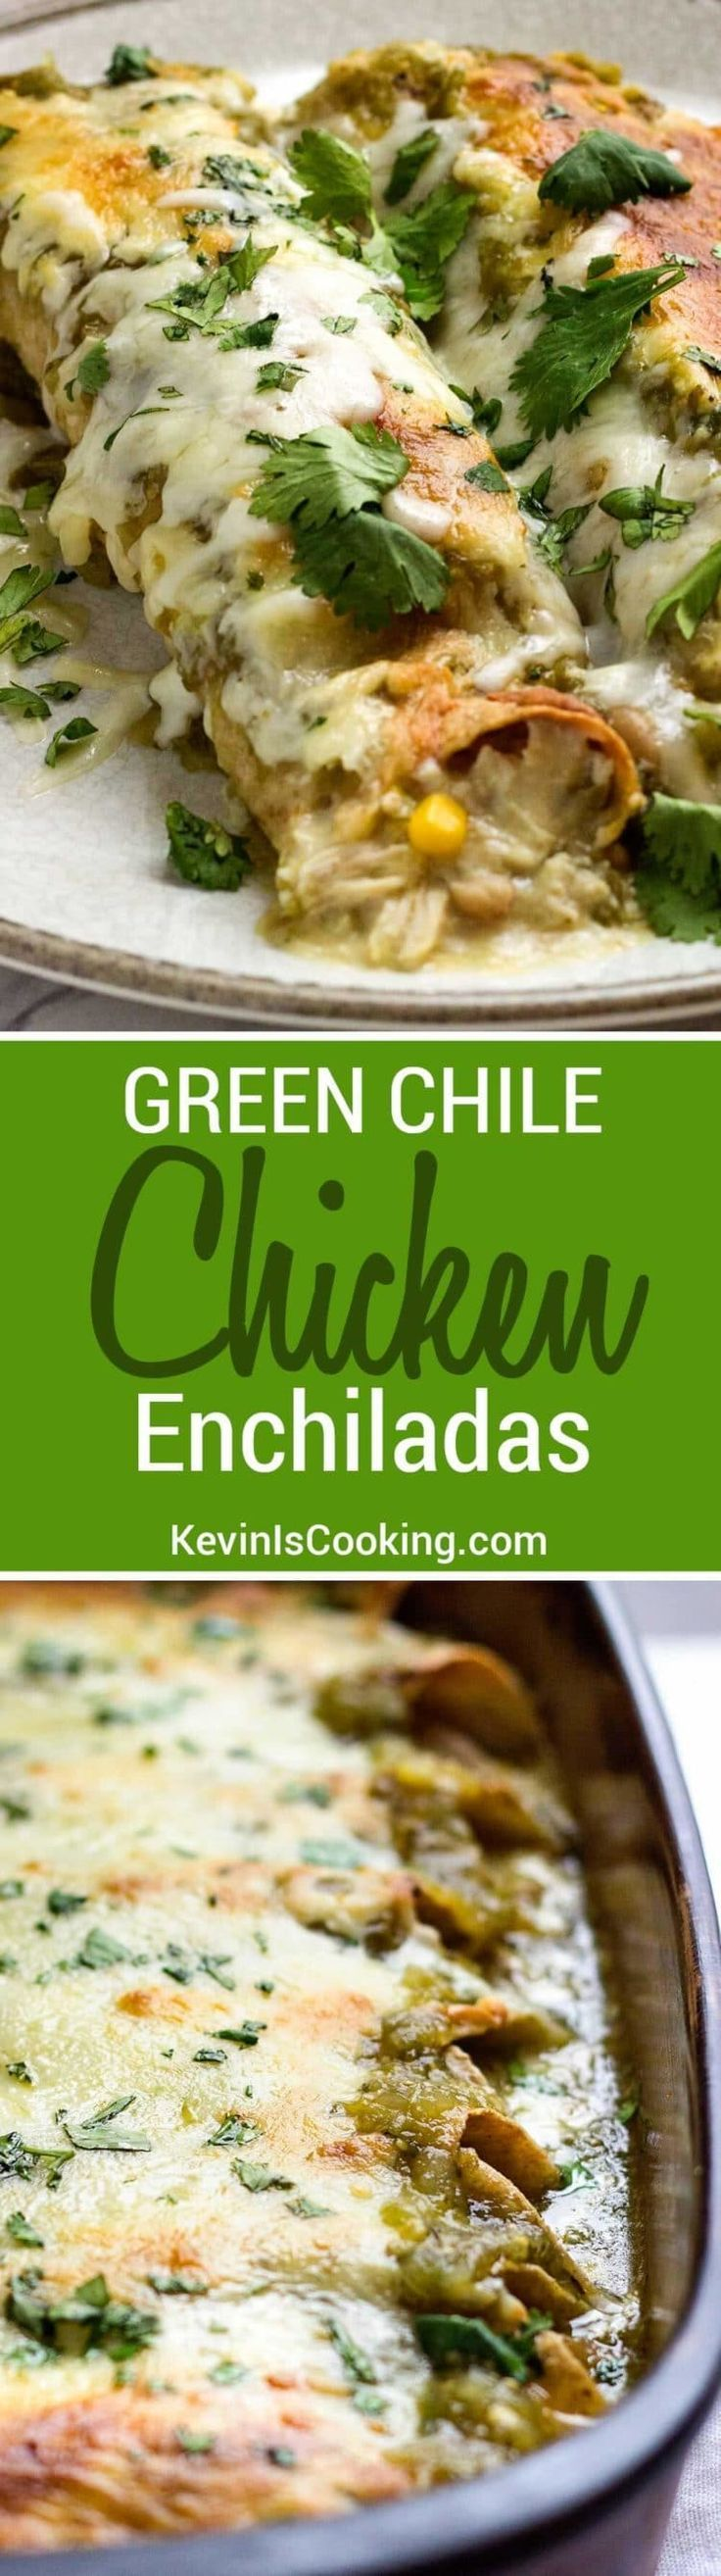 These Green Chile Chicken Enchiladas use shredded chicken, white beans, corn and plenty of Pepper Jack cheese then are smothered in a green salsa verde. via /keviniscooking/